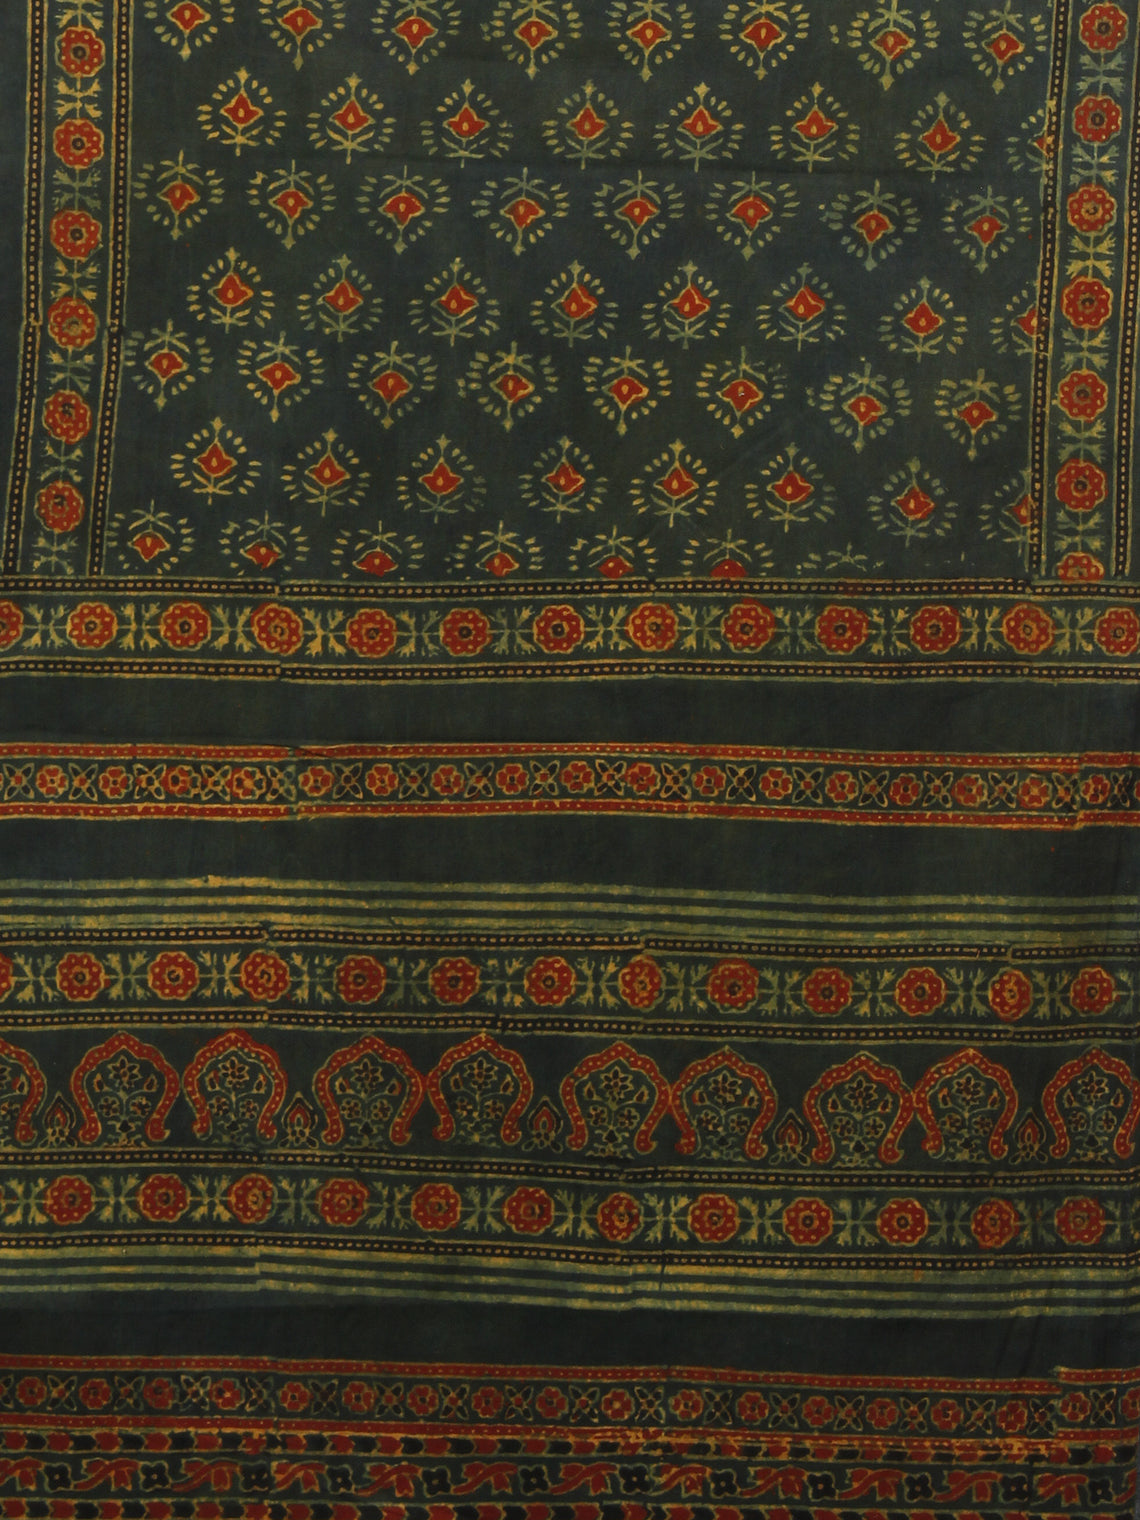 Dark Green Maroon Black Mughal Nakashi Ajrakh Hand Block Printed Cotton Stole - S63170141